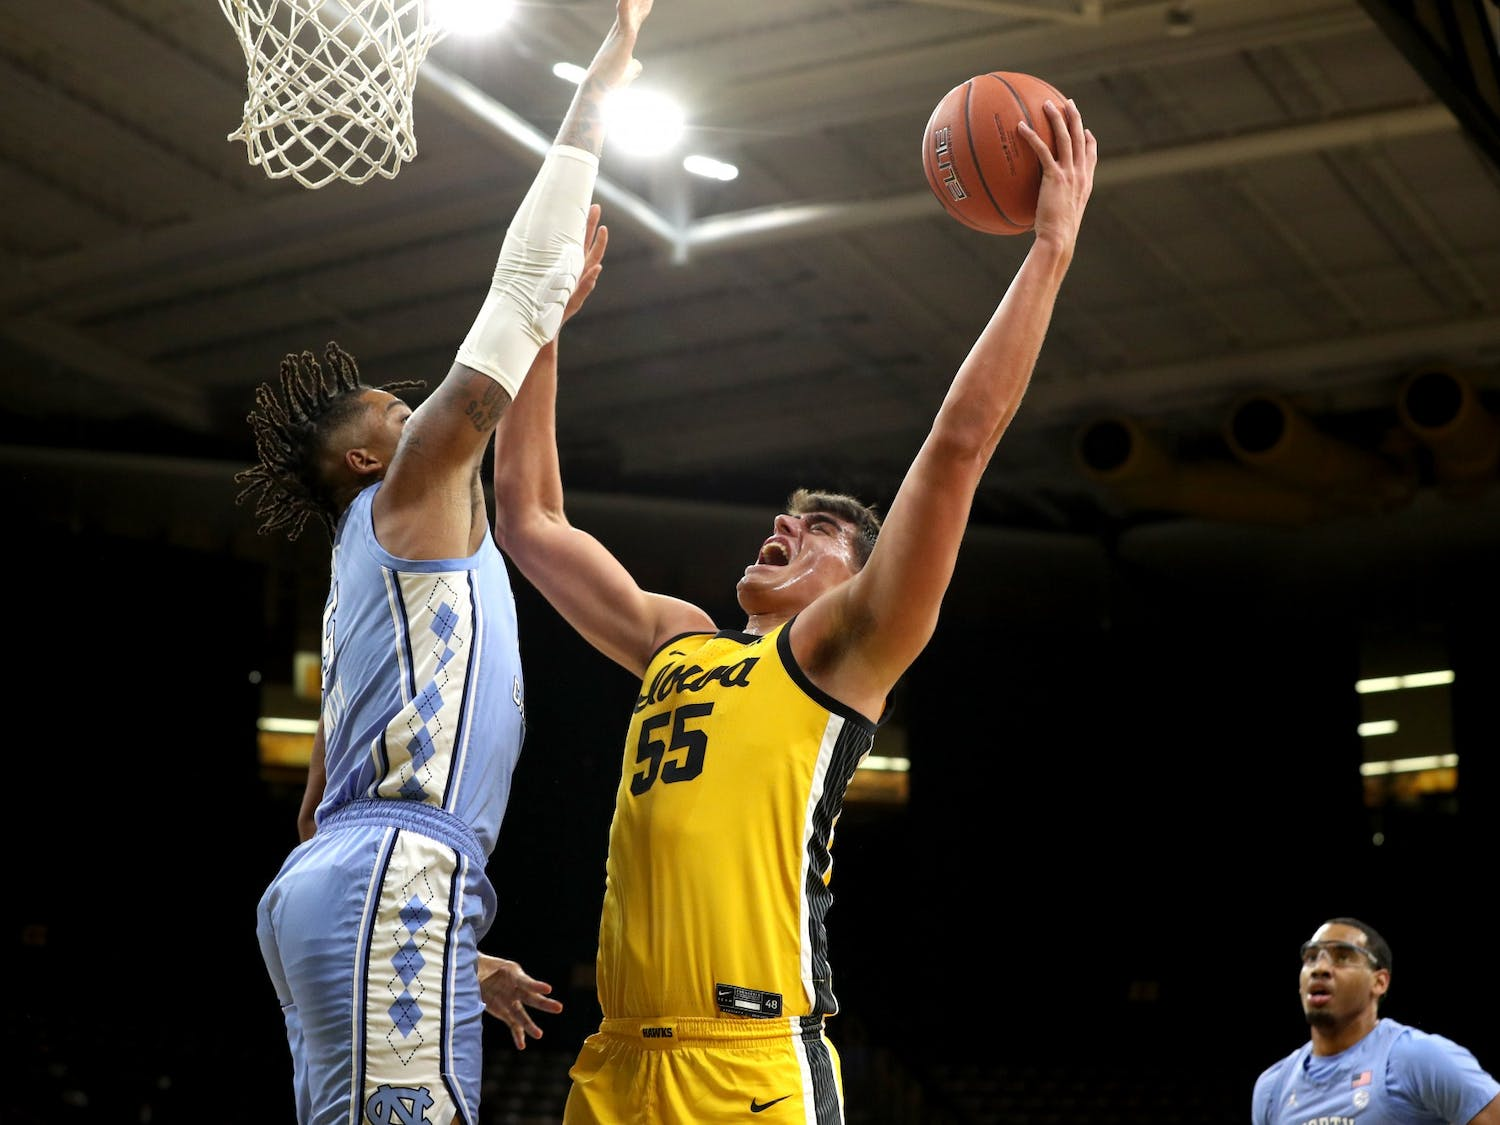 Iowa Hawkeyes center Luka Garza (55) goes to the hoop against the North Carolina Tar Heels Tuesday, December 8, 2020 at Carver-Hawkeye Arena. Photo courtesy of Brian Ray/hawkeyesports.com